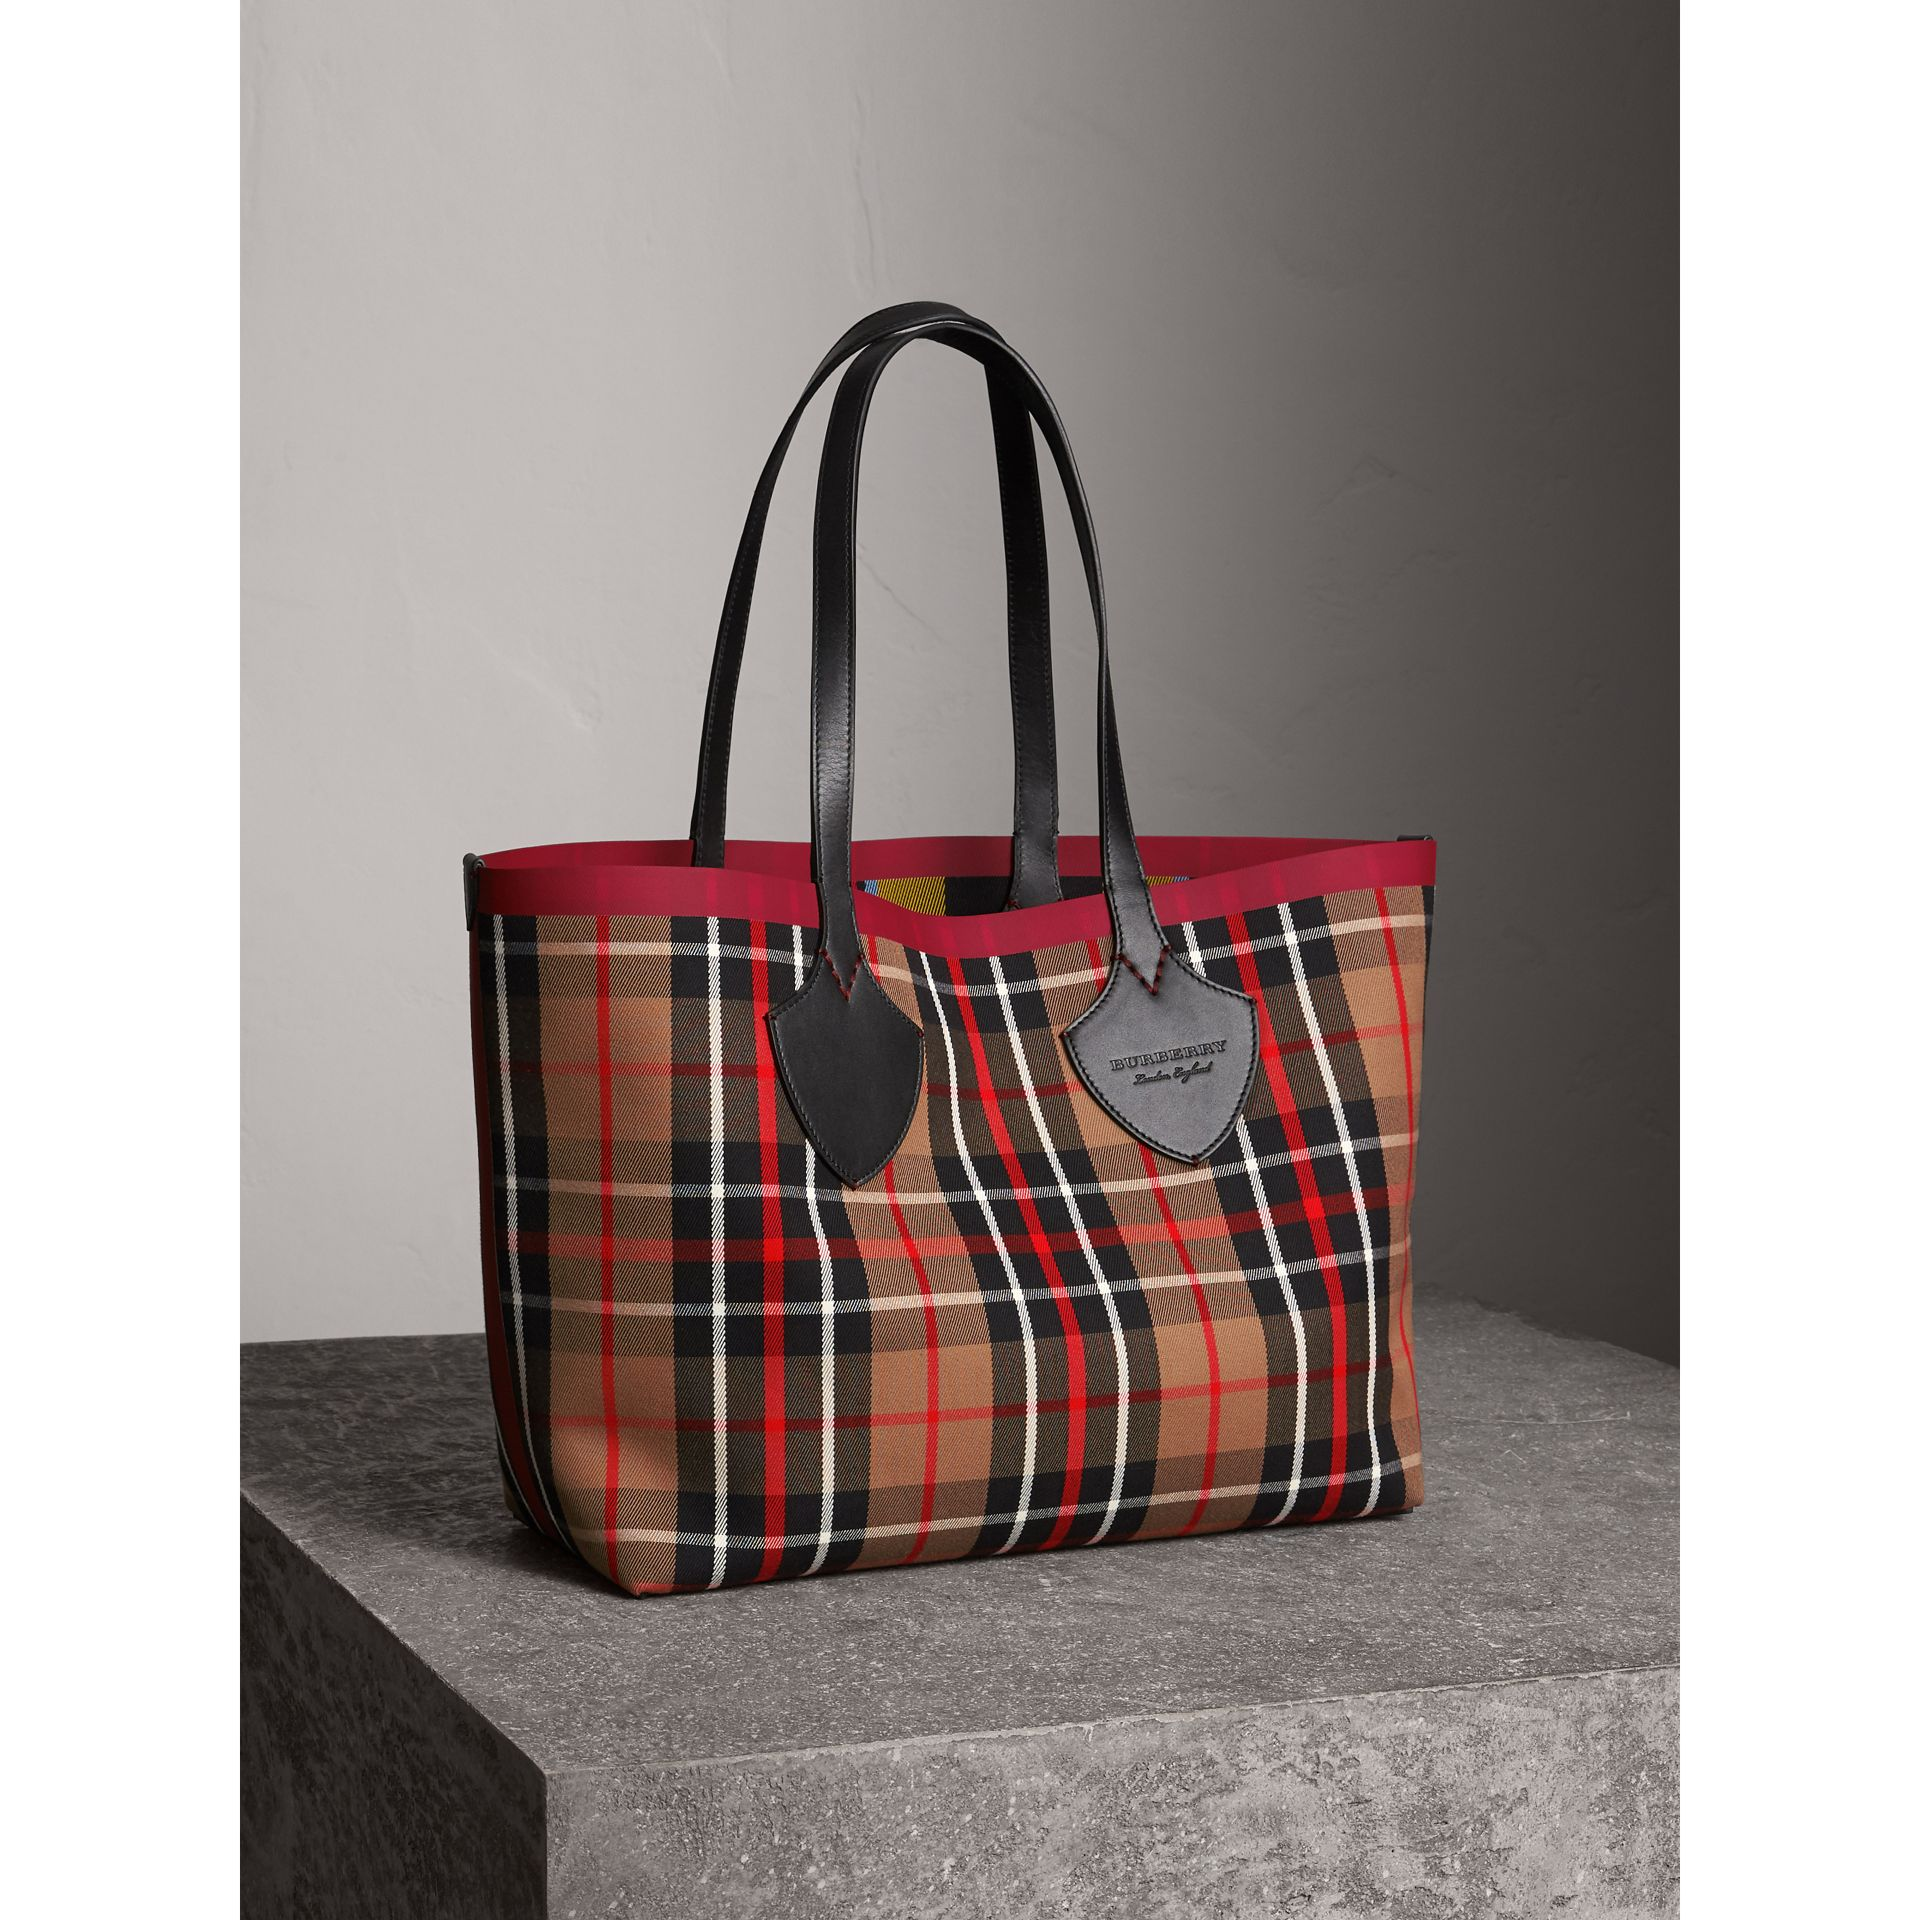 Borsa tote The Giant media double face in cotone con motivo tartan (Caramello/giallo Lino) | Burberry - immagine della galleria 7